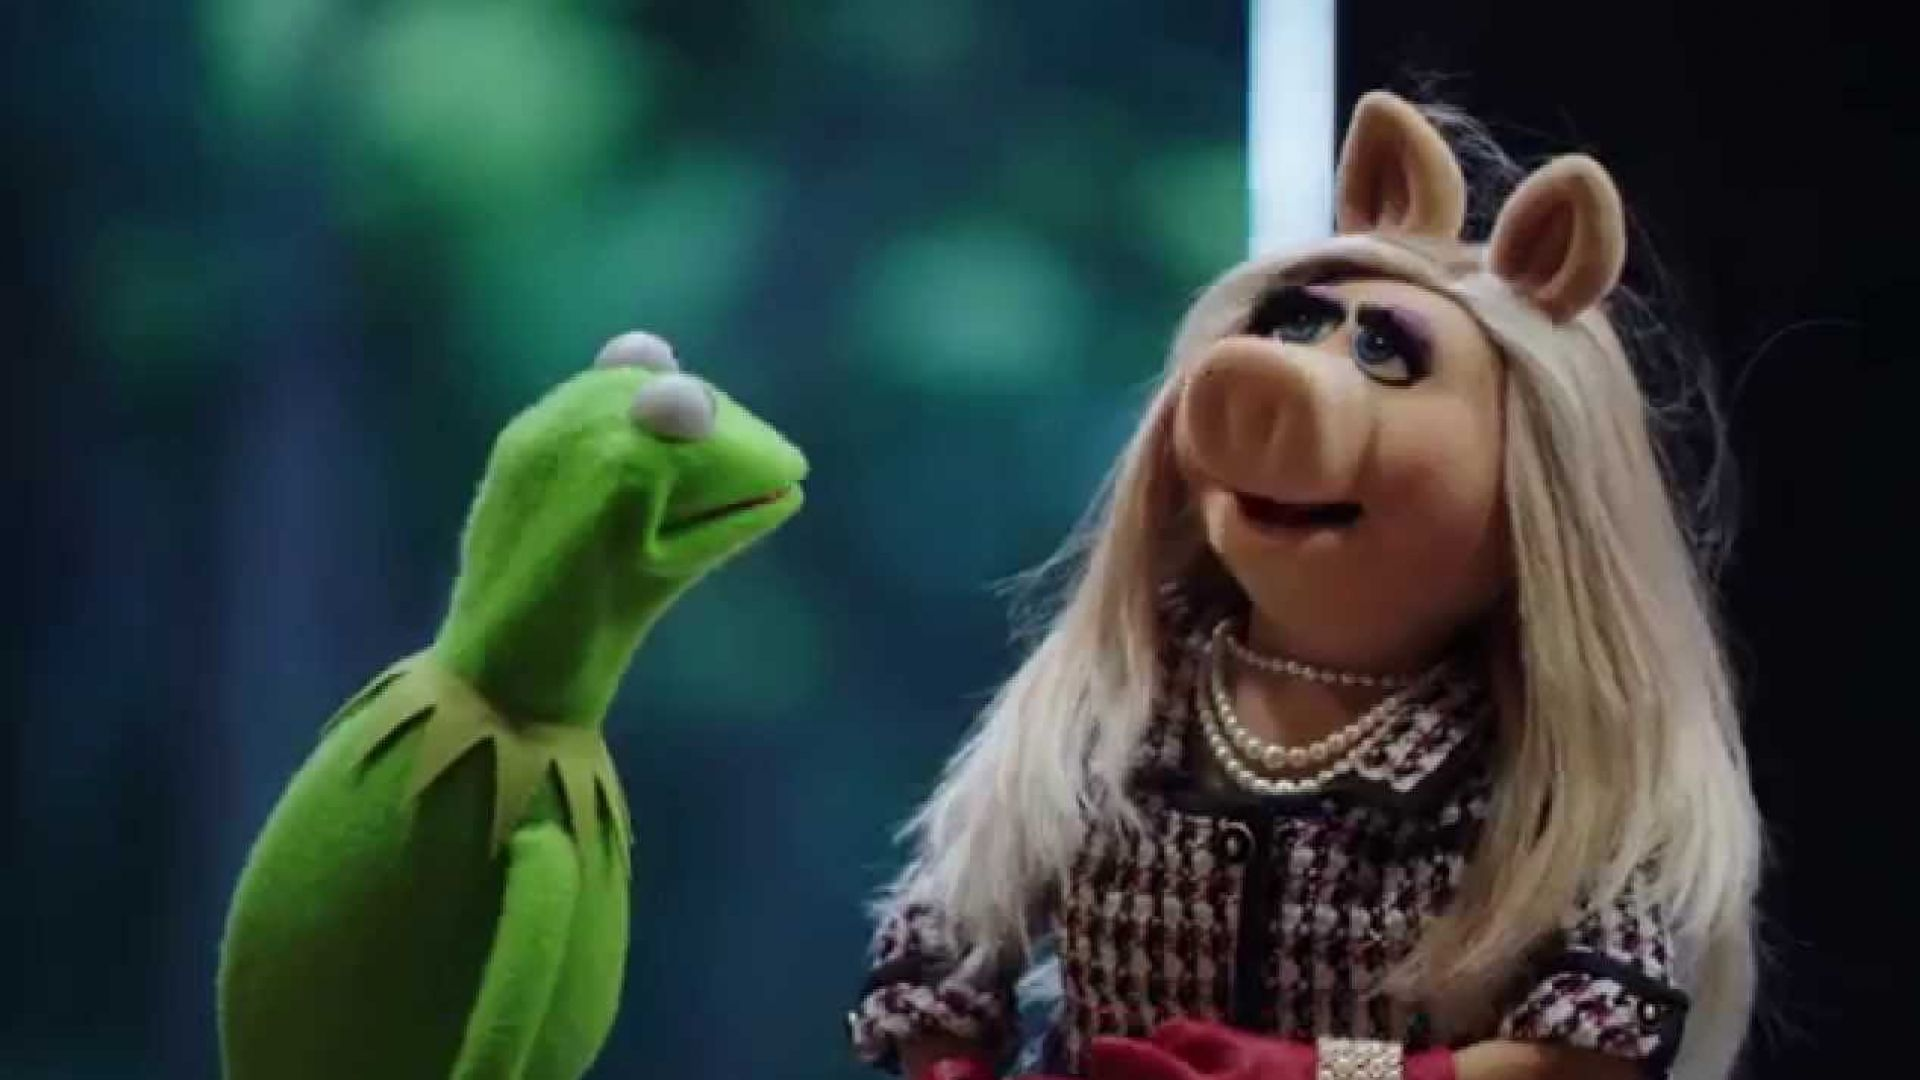 This 10-Minute Pitch Video Landed 'The Muppets' Their New TV